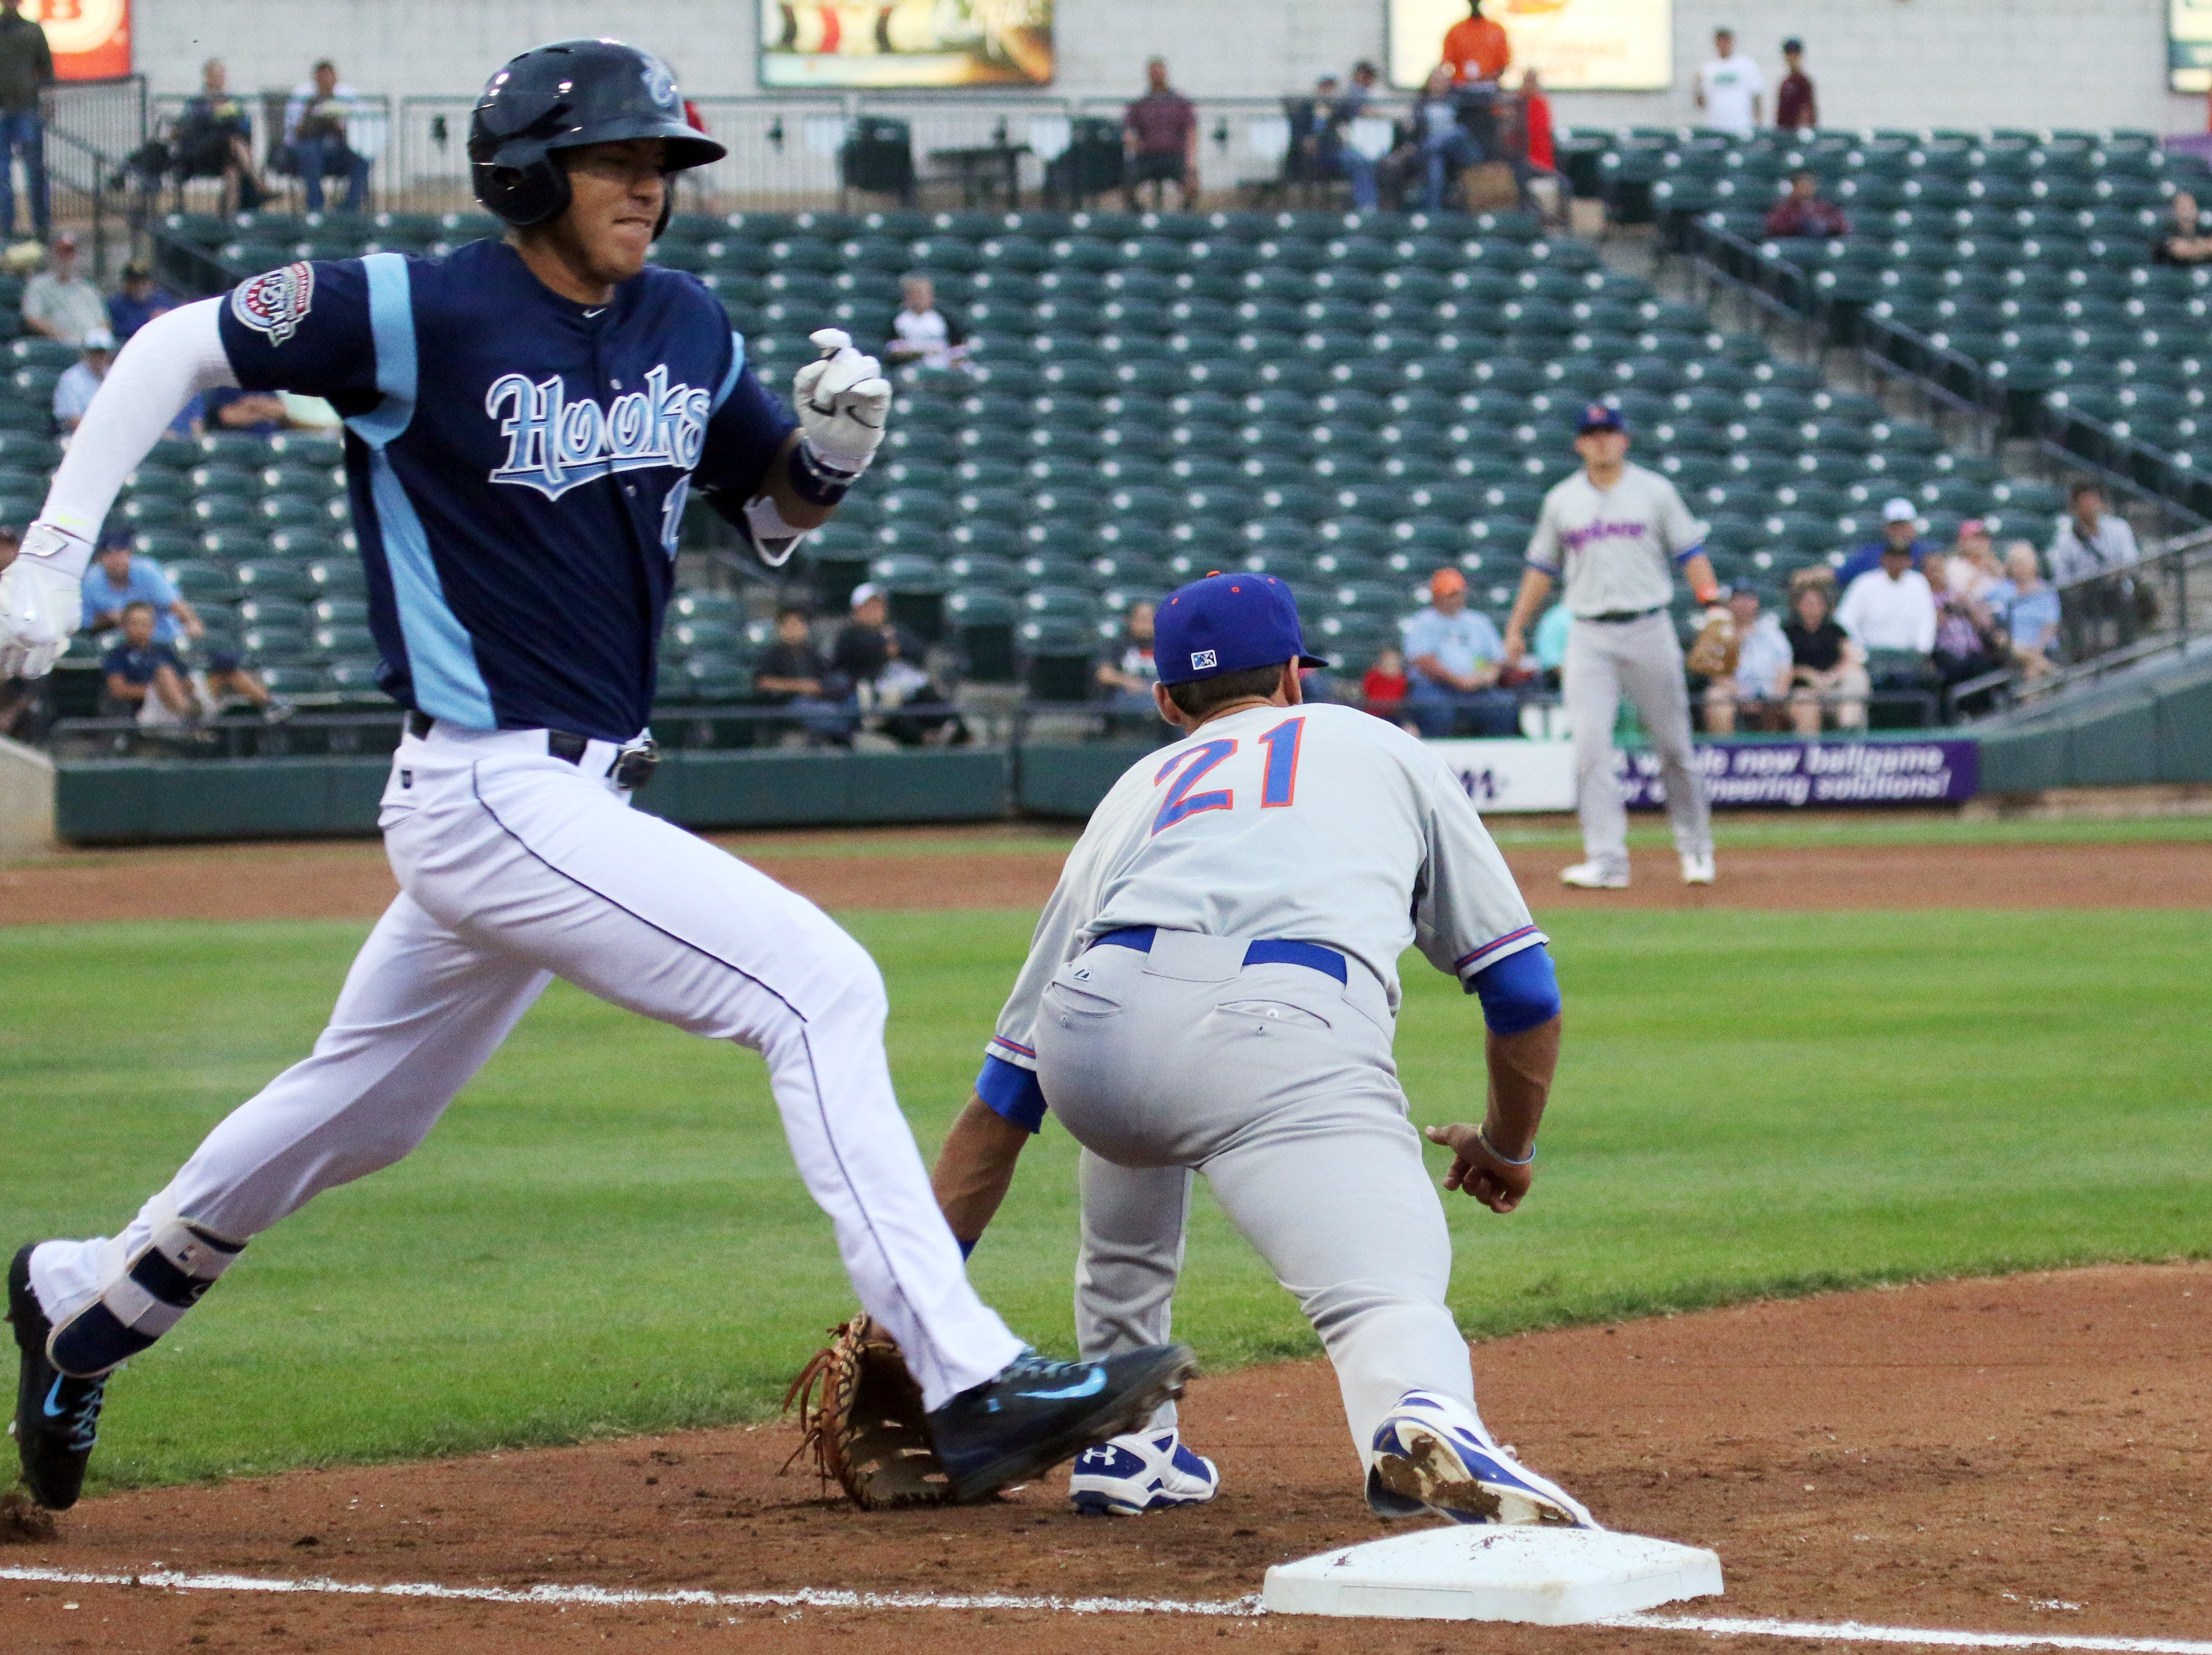 Erick Sifuentes/Special to The Caller-TimesCorpus Christi Hooks' Carlos Correa beats out a throw to first against the Midland Rockhounds at Whataburger Field onTuesday evening.